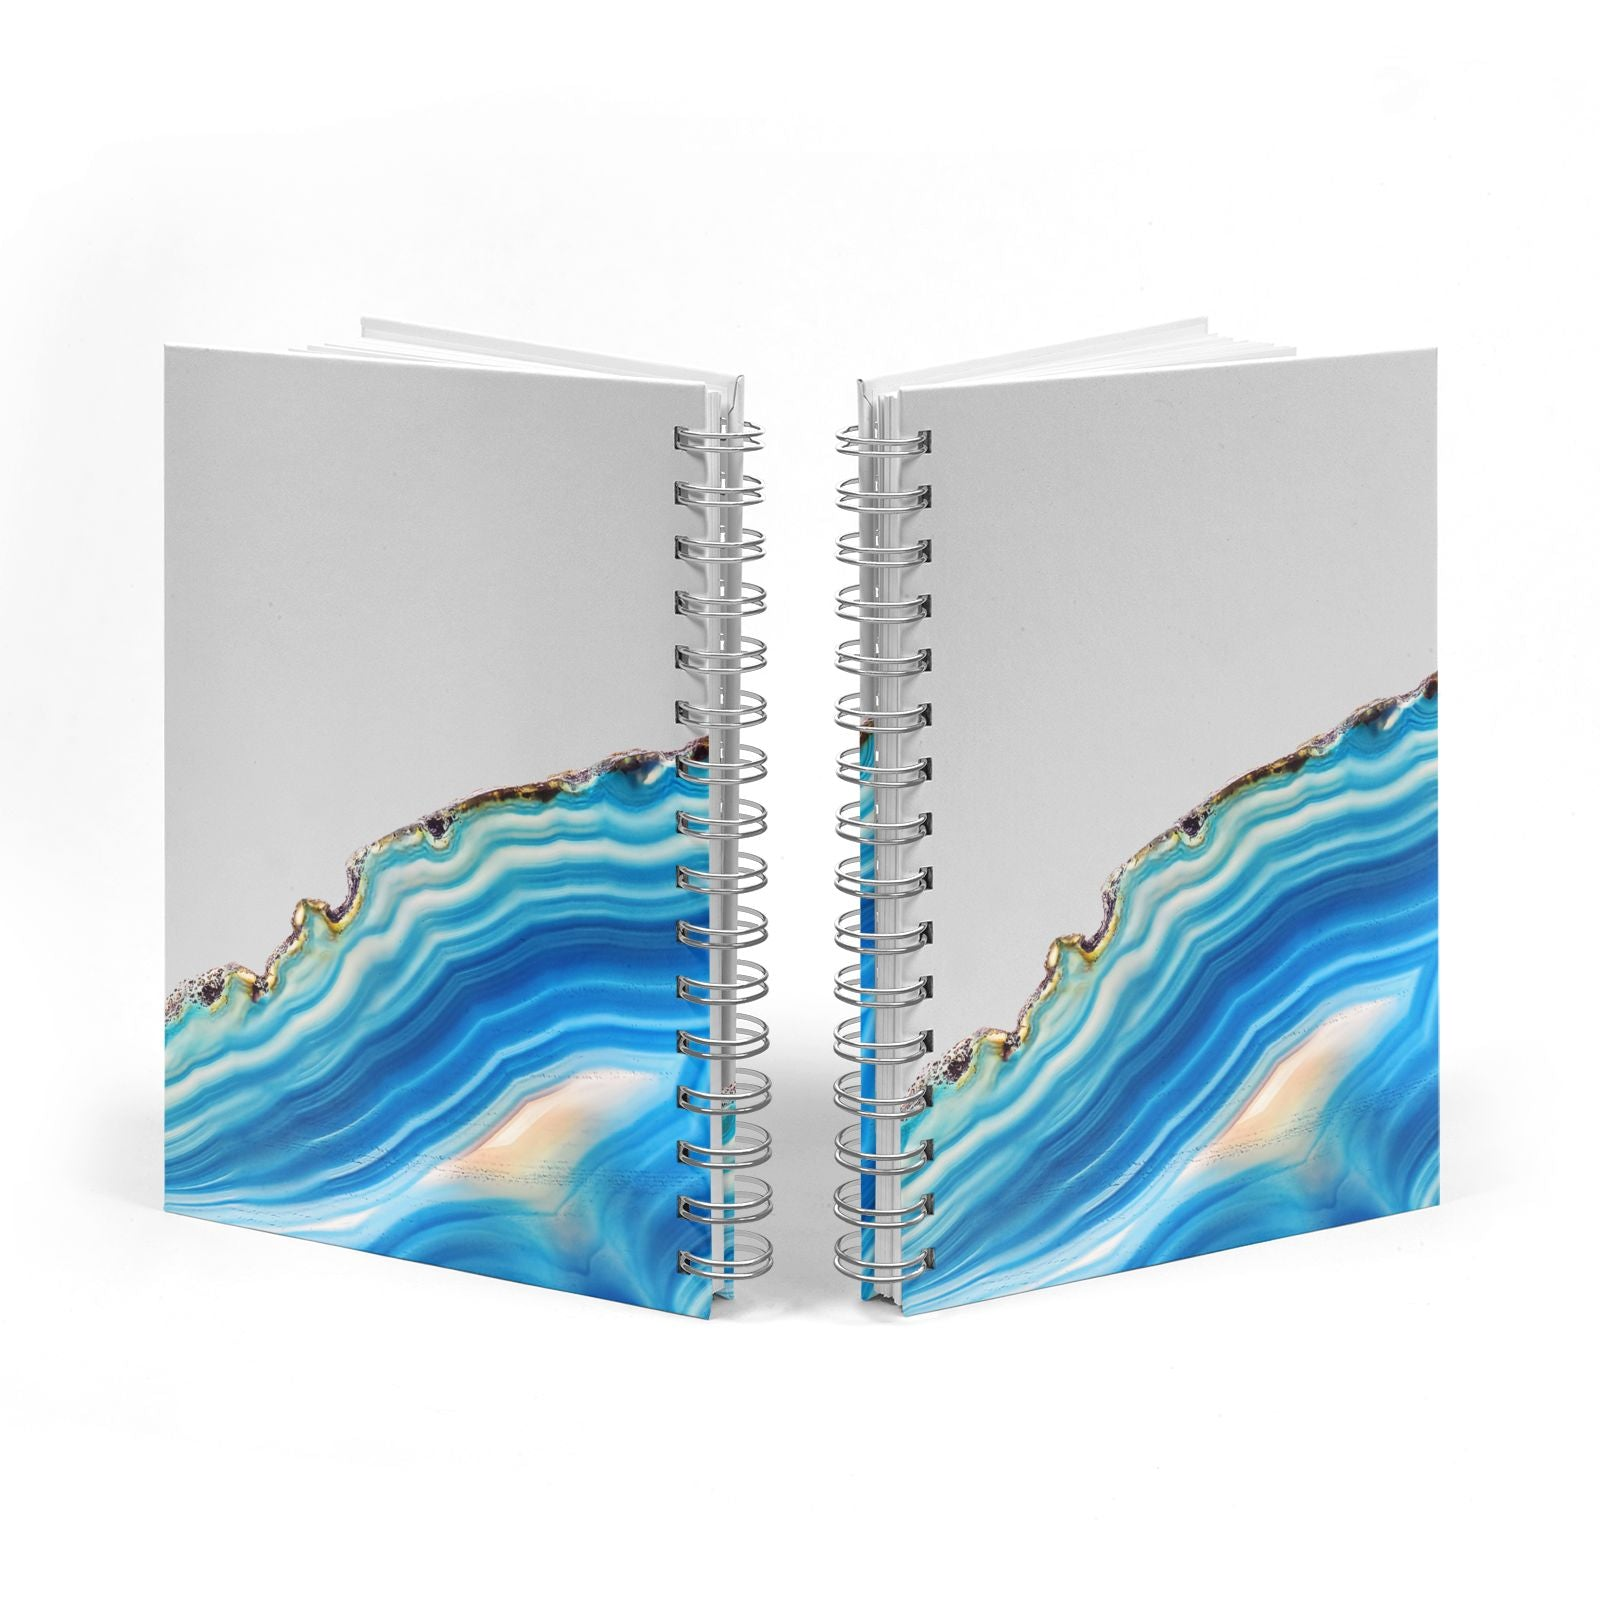 Agate Pale Blue and Bright Blue Notebook with Silver Coil Spine View